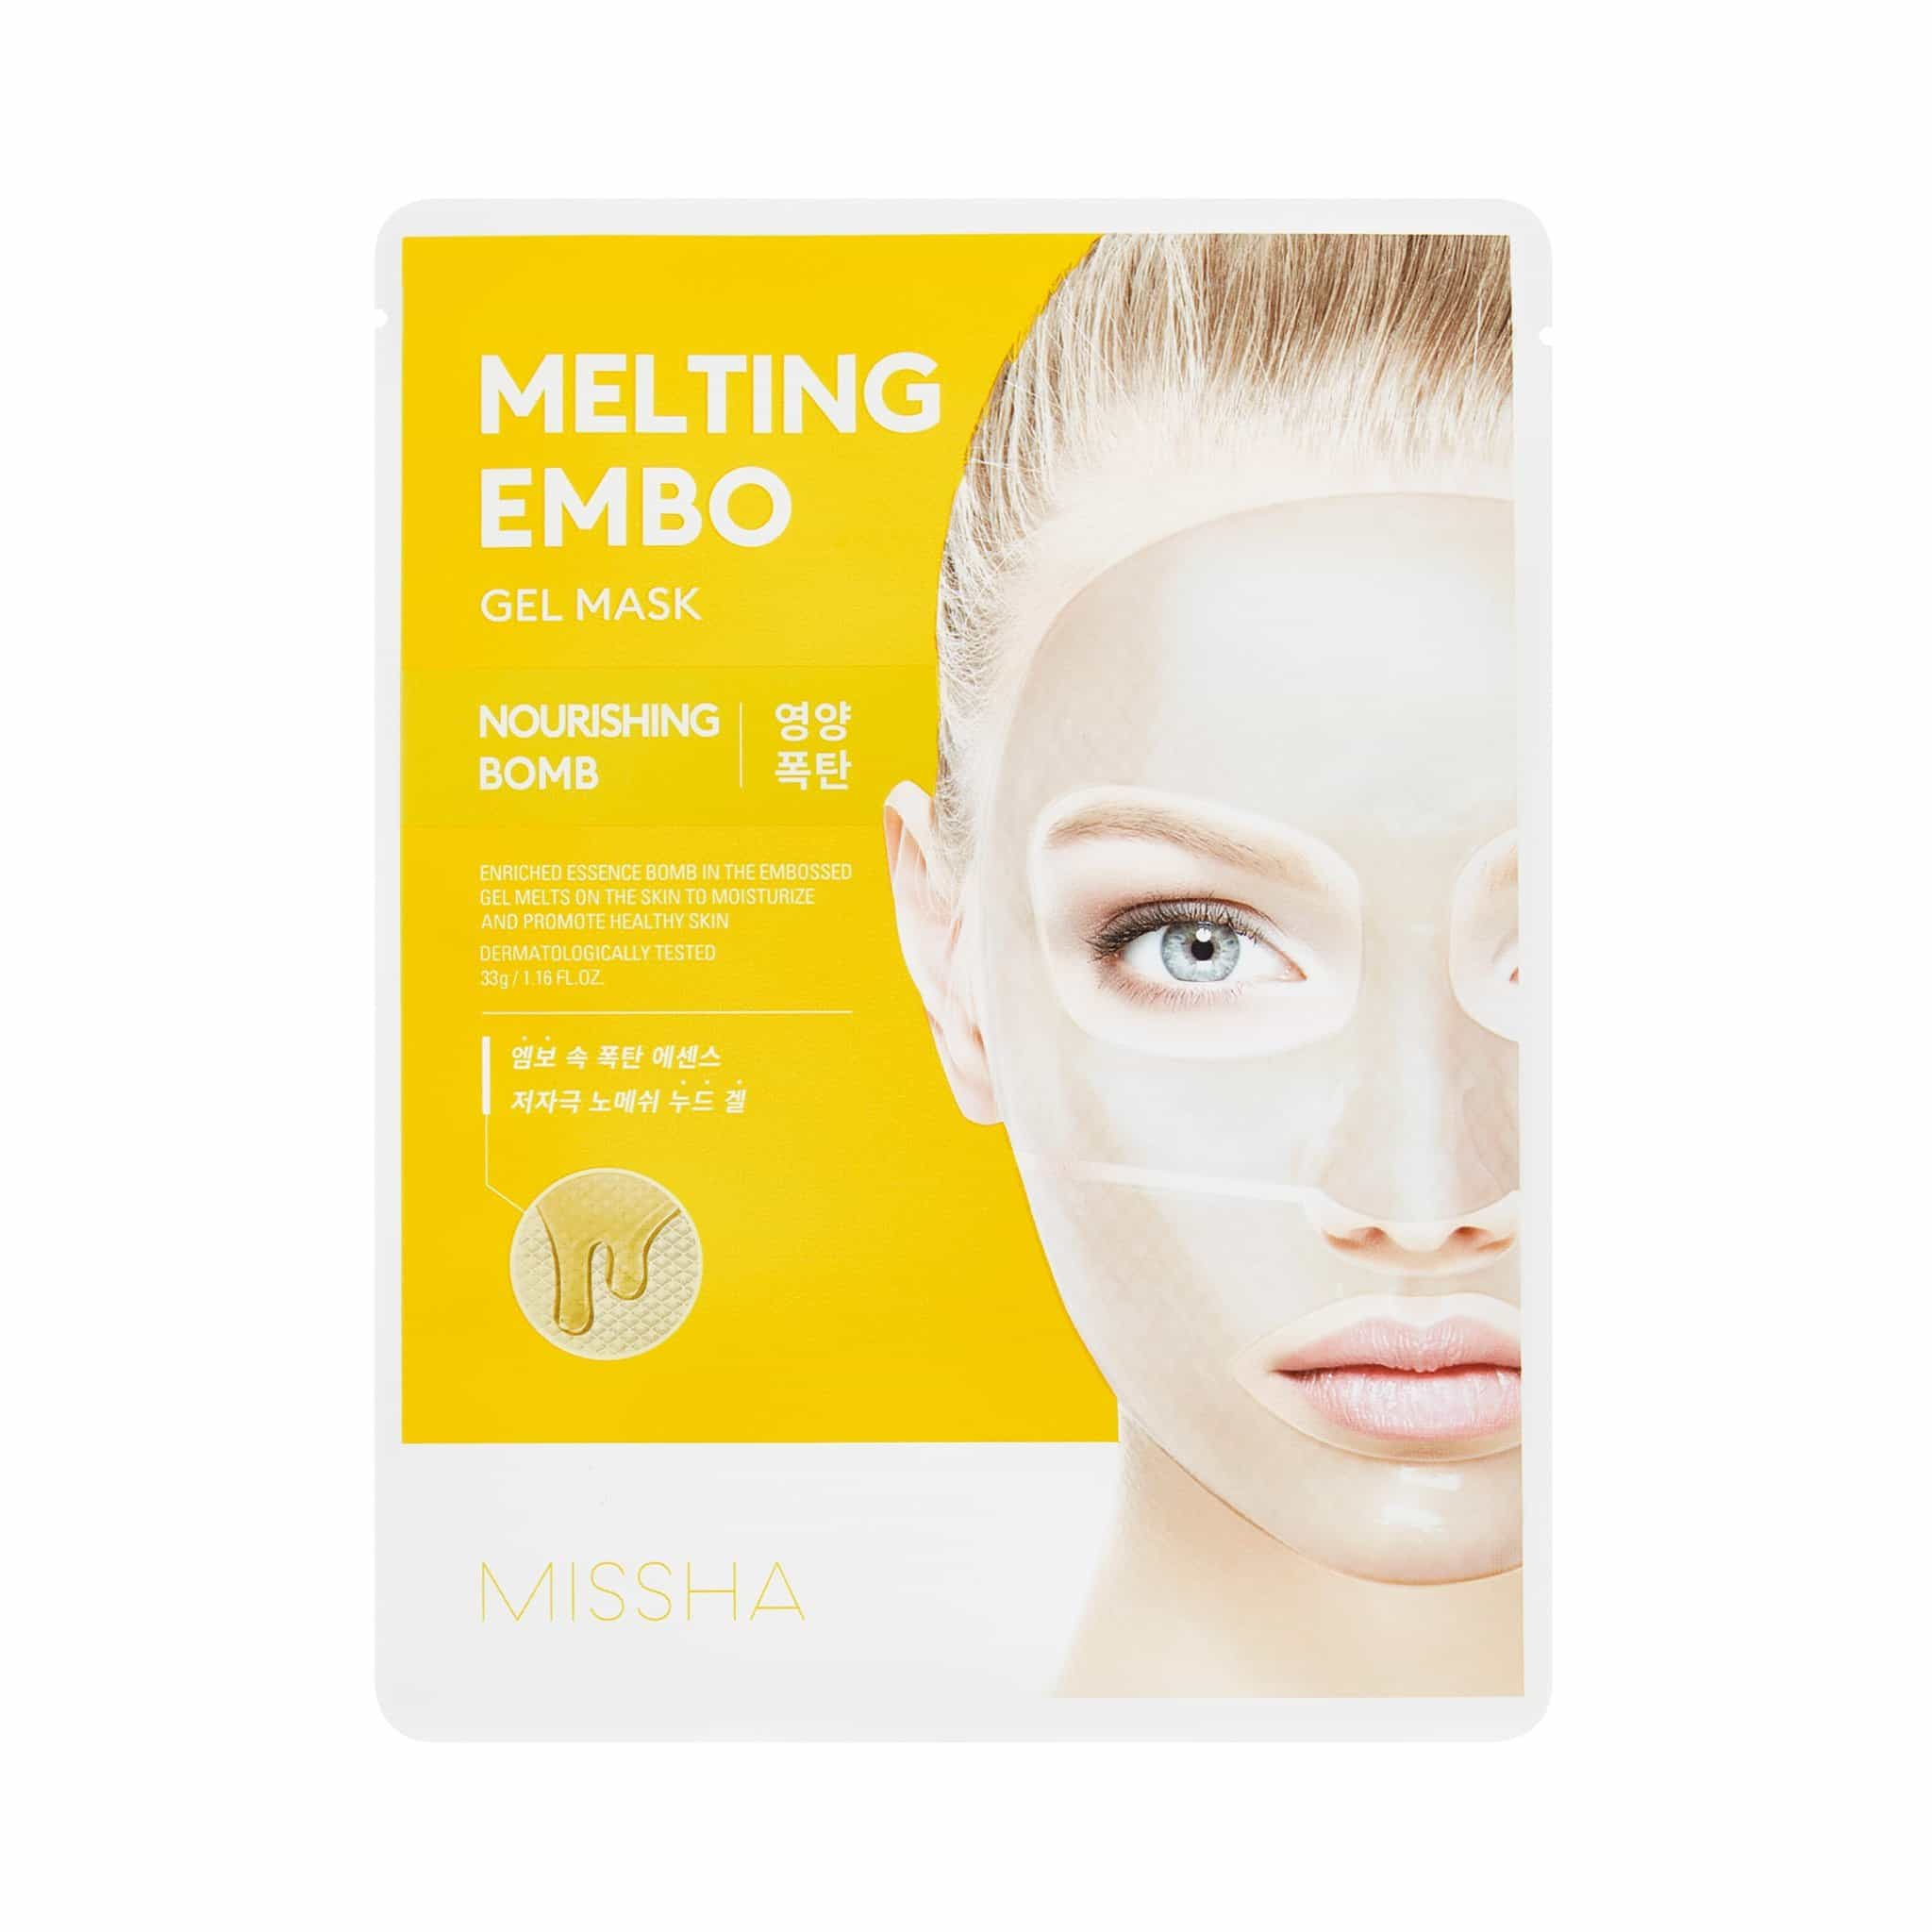 MELTING EMBO GEL MASK - MISSHA